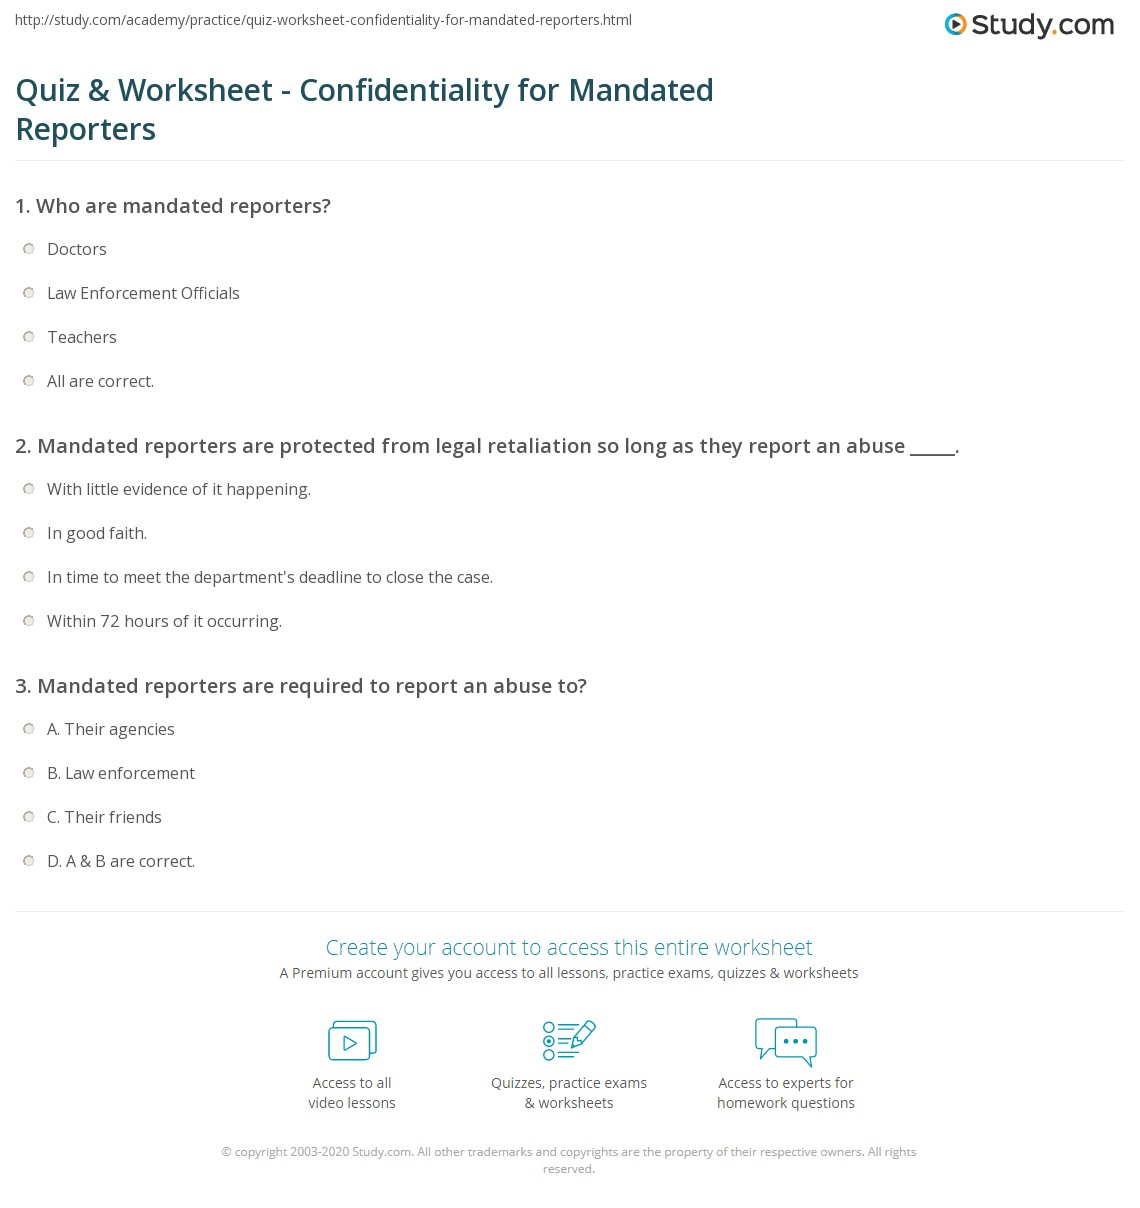 Quiz Worksheet Confidentiality For Mandated Reporters Study